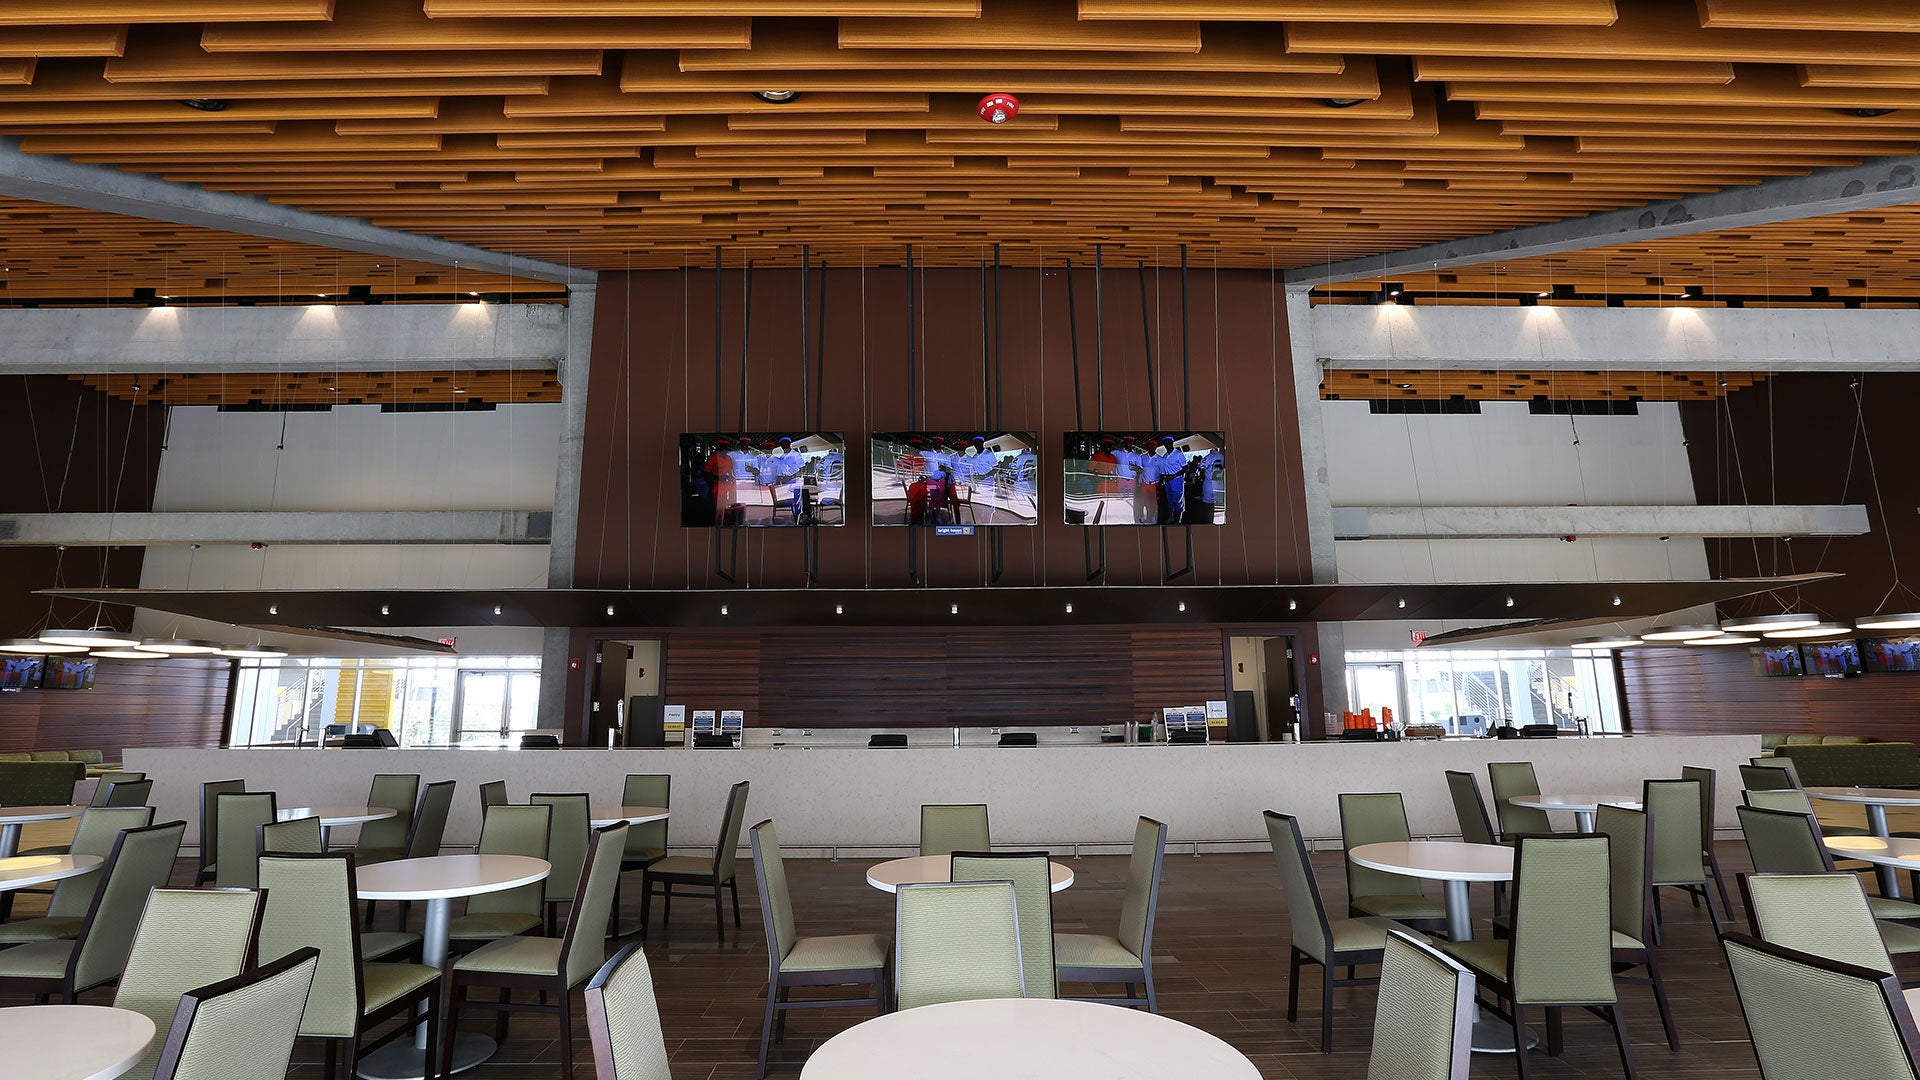 Orlando citrus bowl indoor club for Mercedes benz lounge amway center